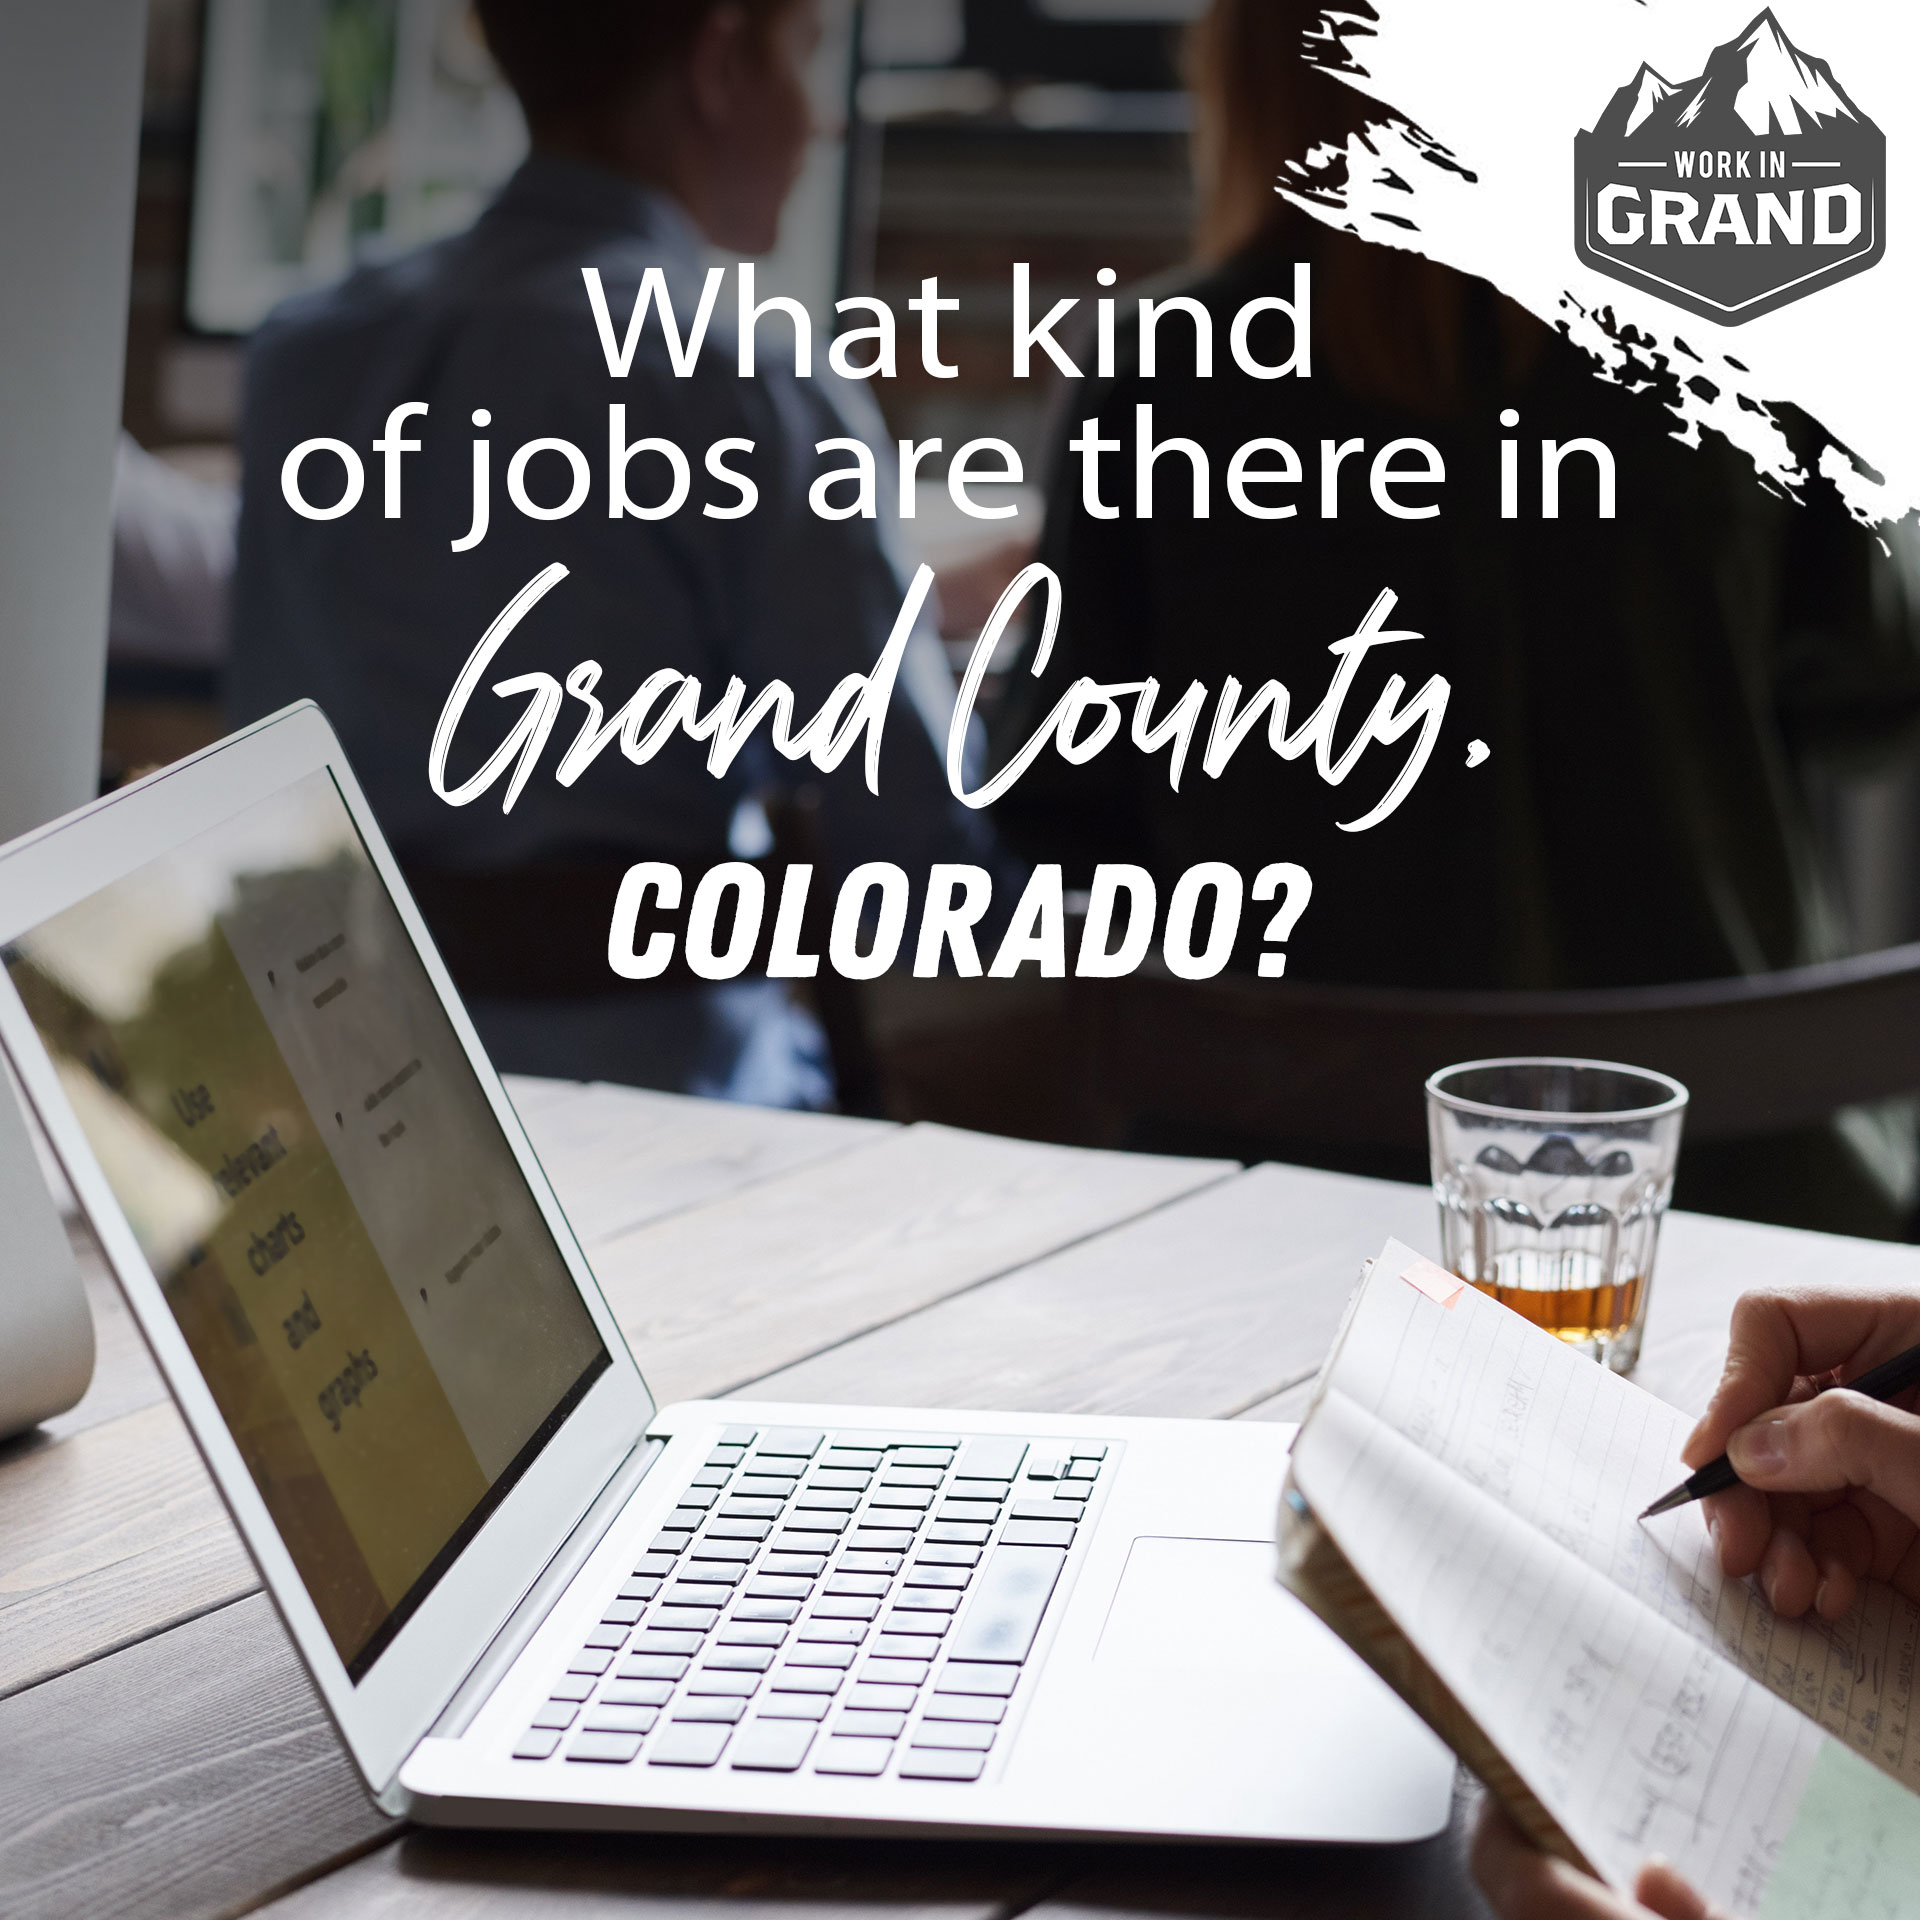 What kind of jobs are there in Grand County, Colorado?